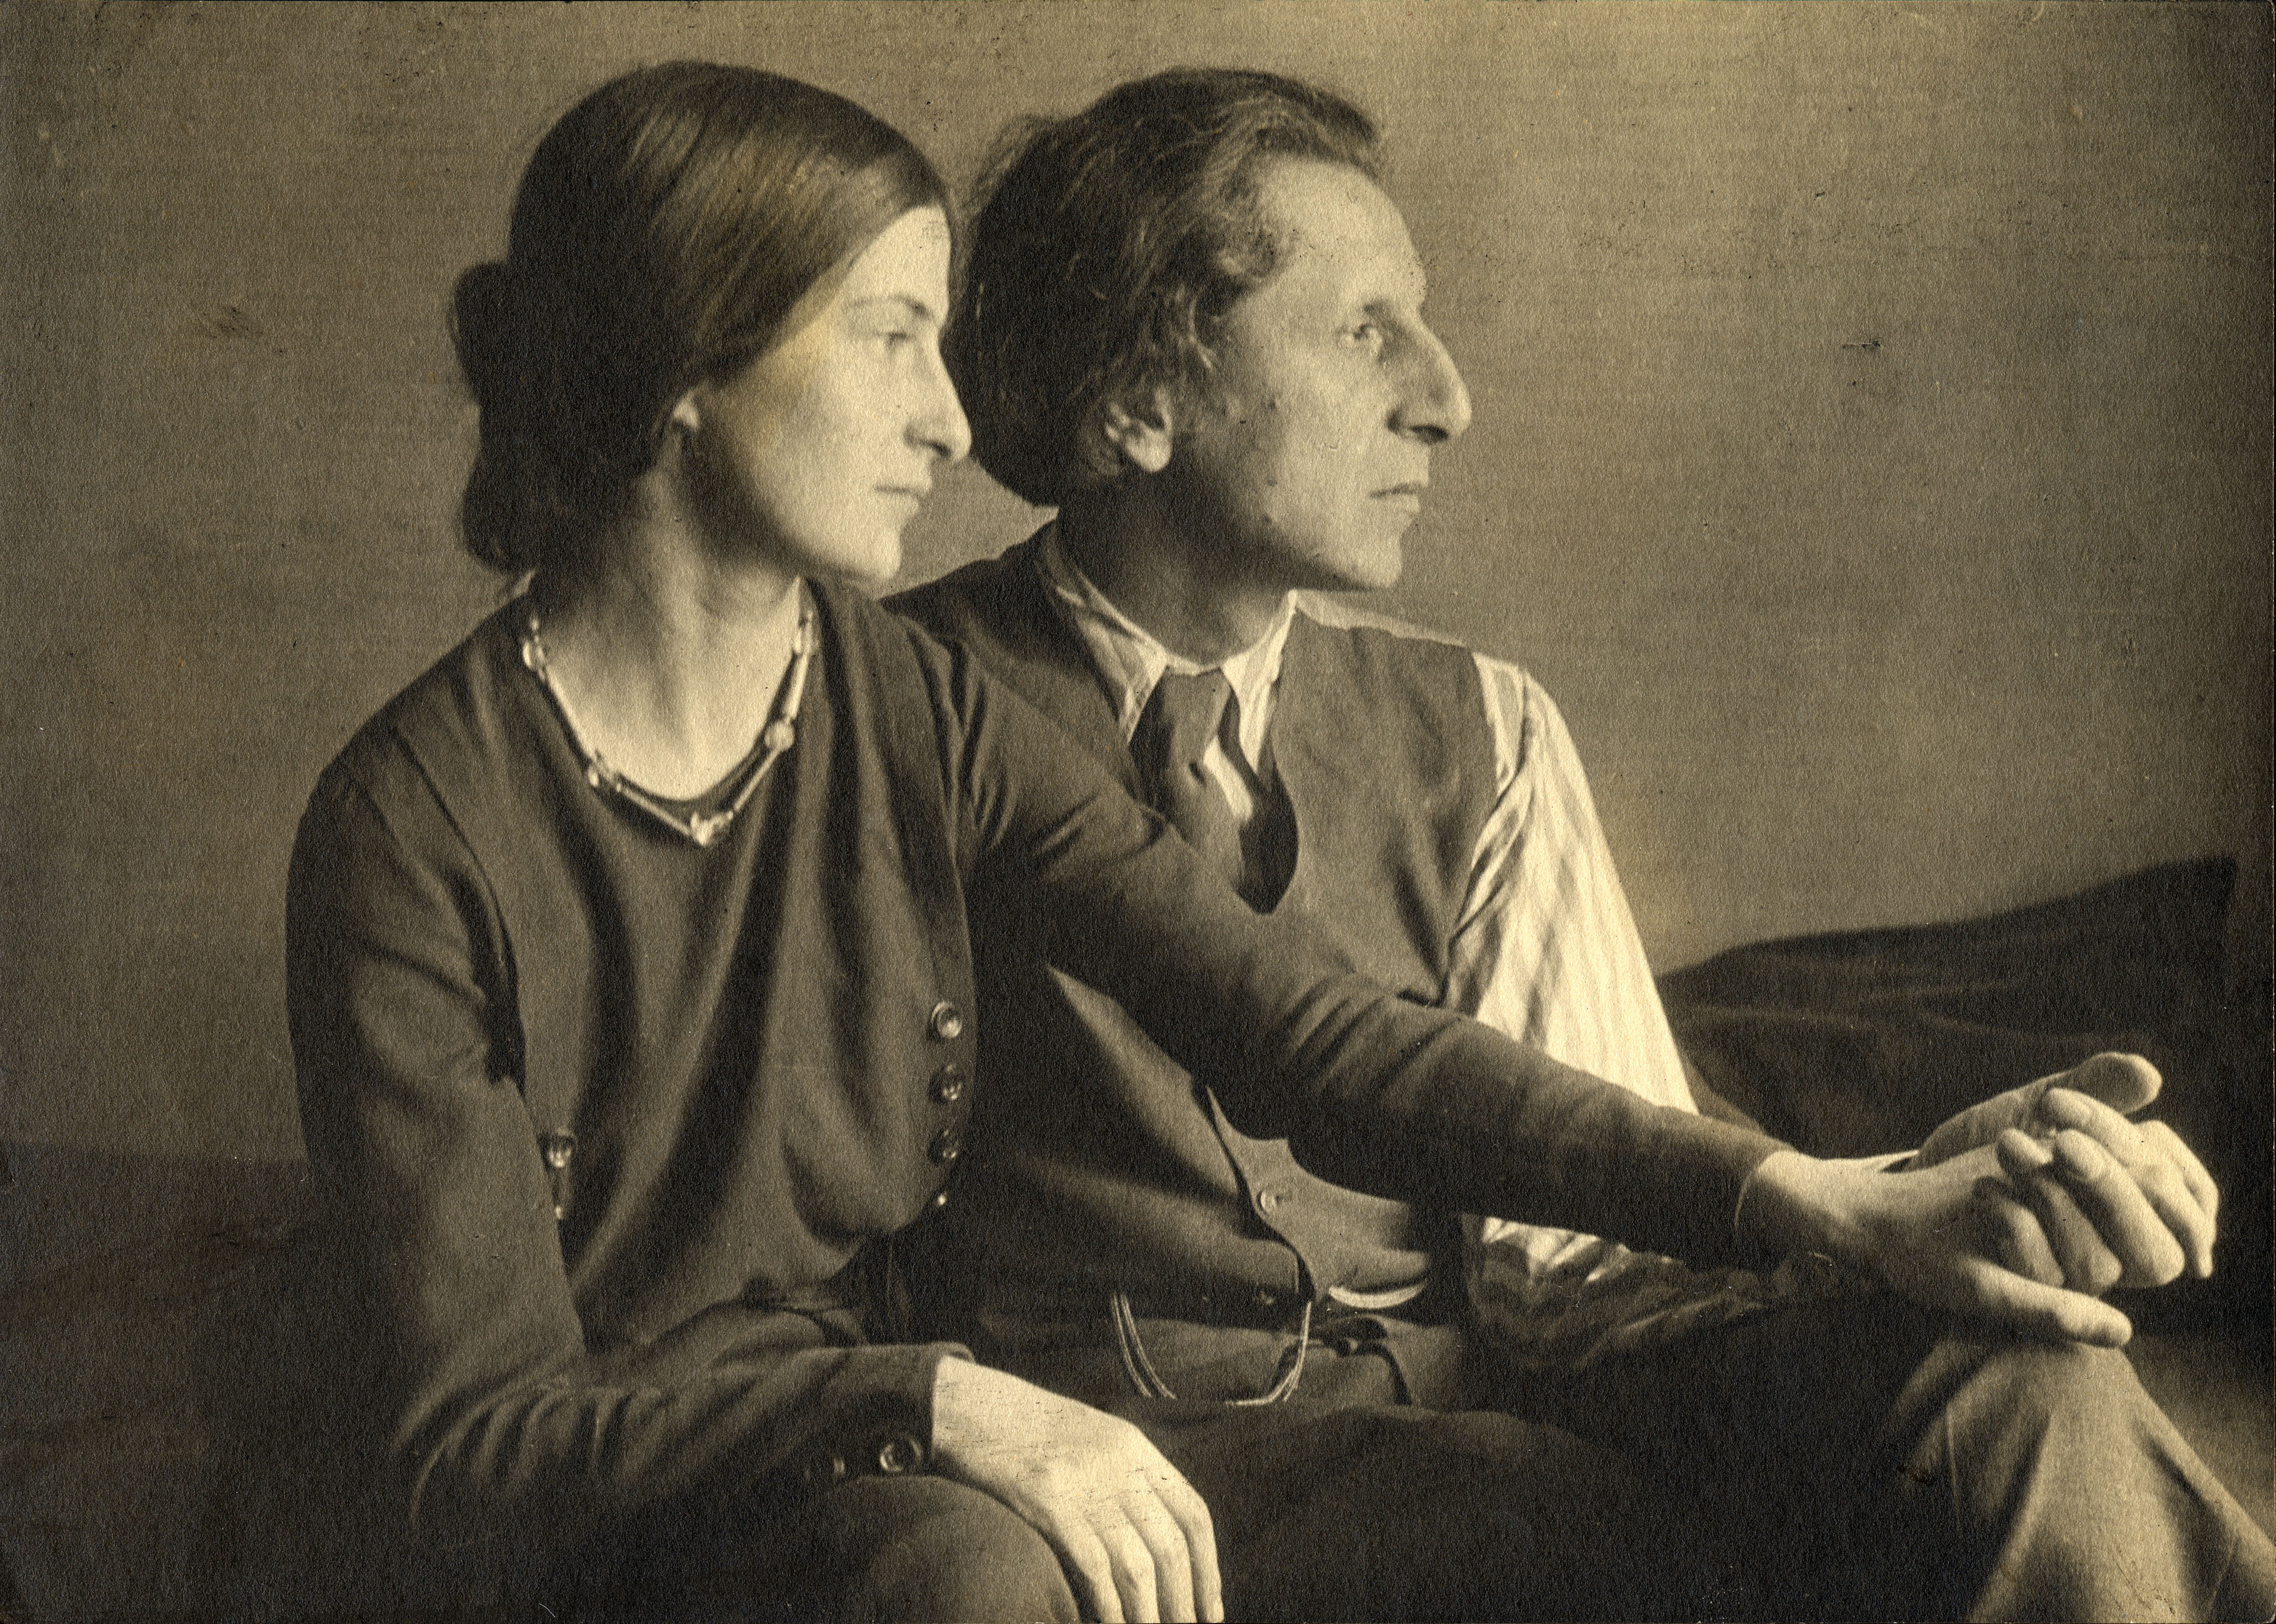 Ananda Coomaraswamy with Stella Bloch, c. 1922